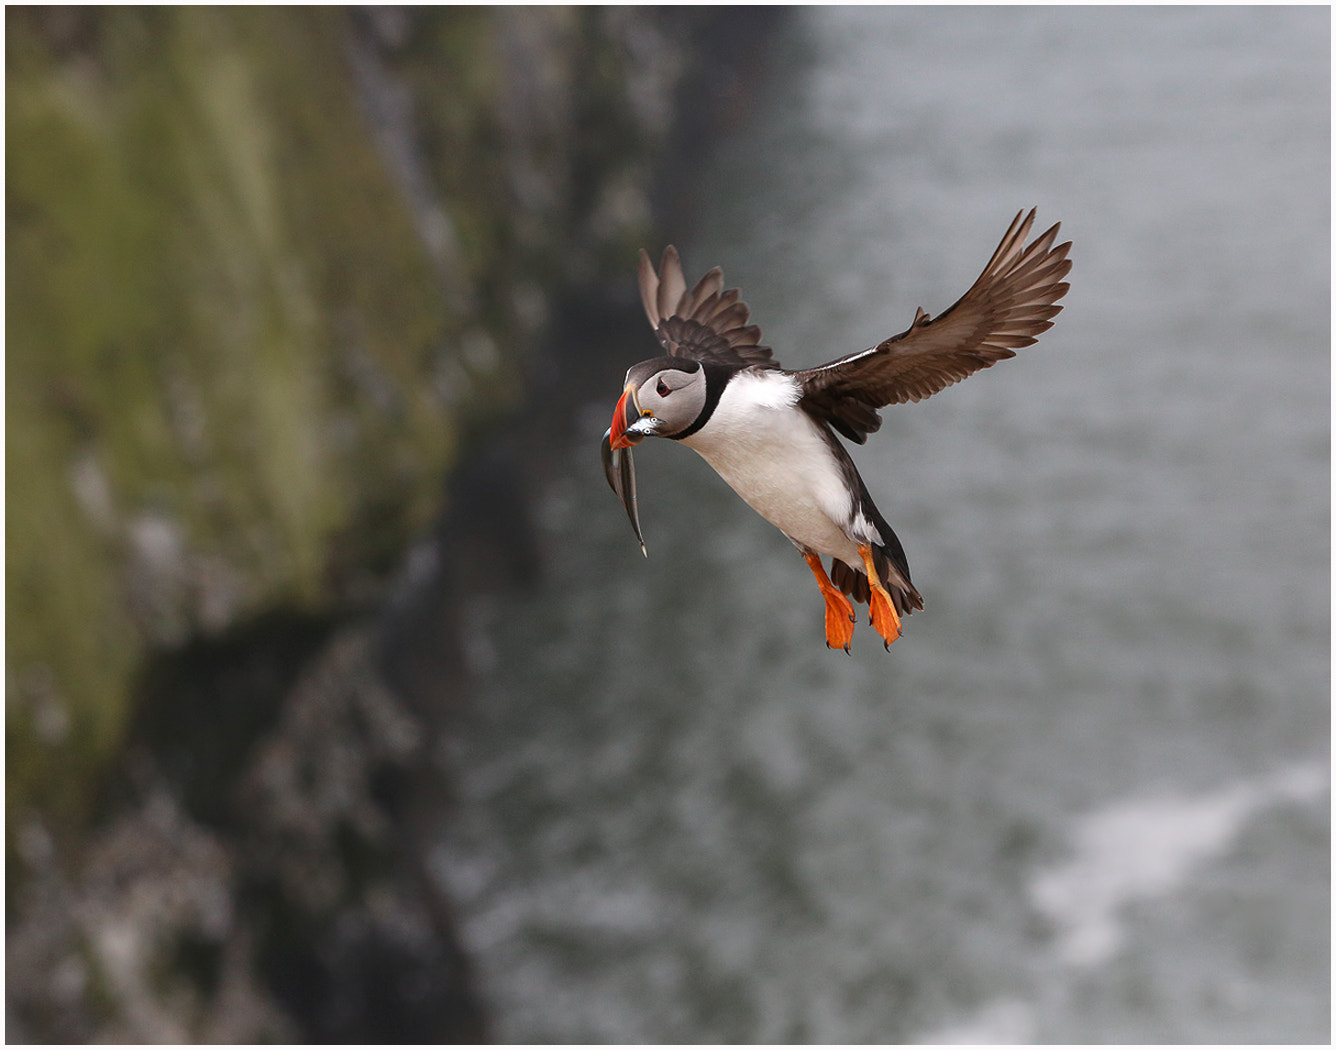 Photograph Puffin with Fish by Alan Coles on 500px